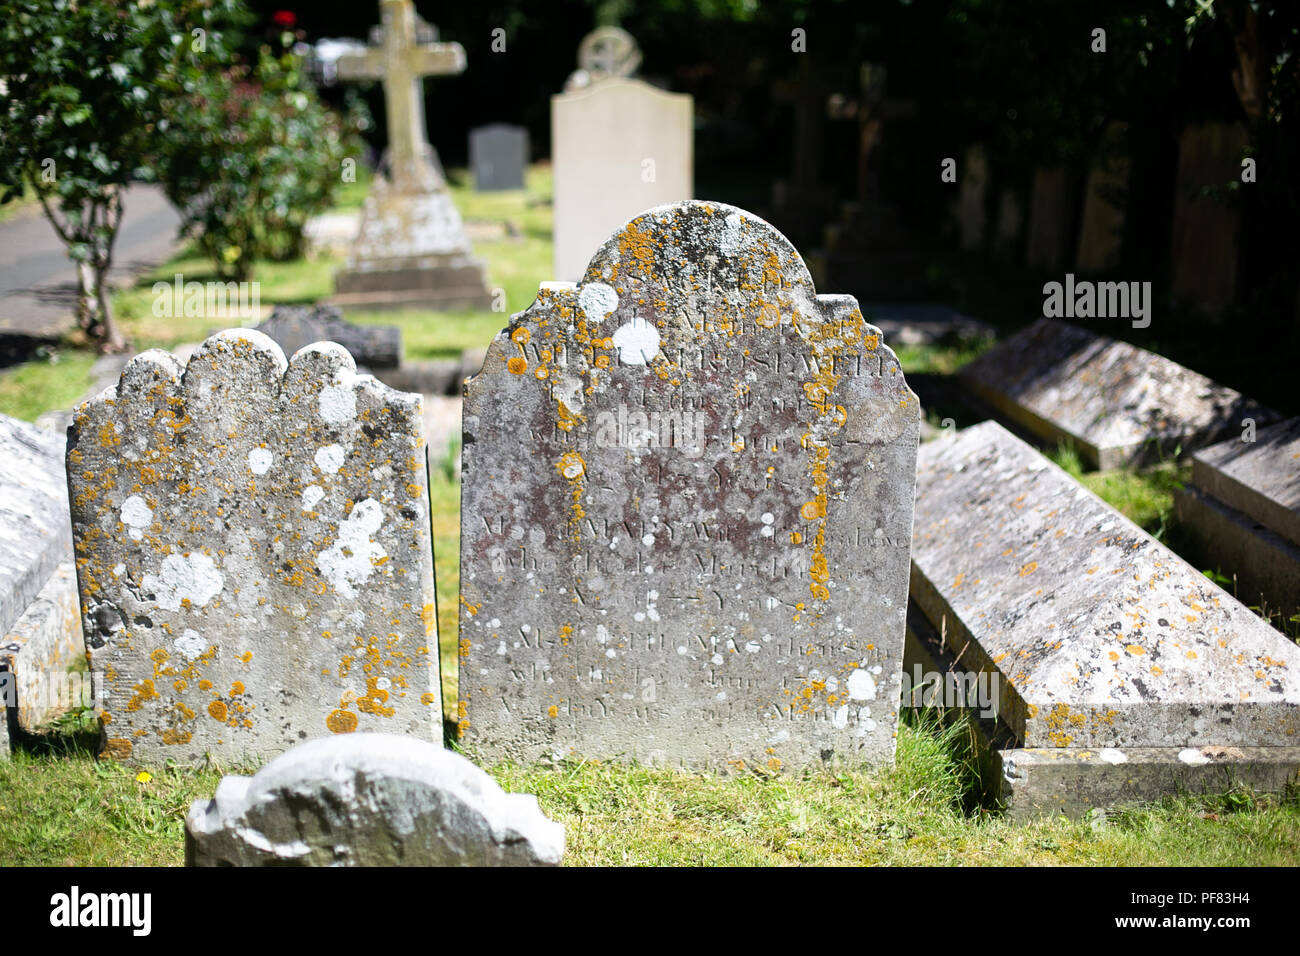 Old headstones and graves in an english churchyard - Stock Image